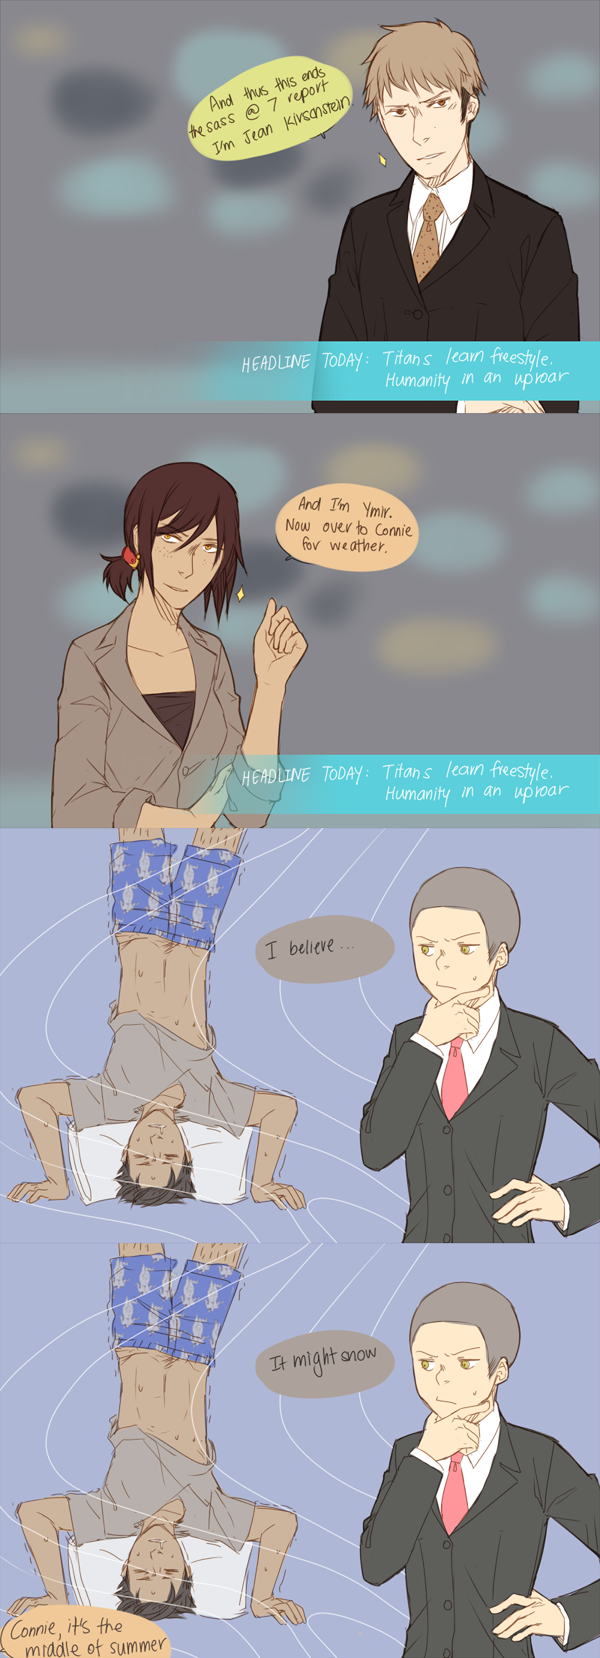 News reporters. by Sangcoon